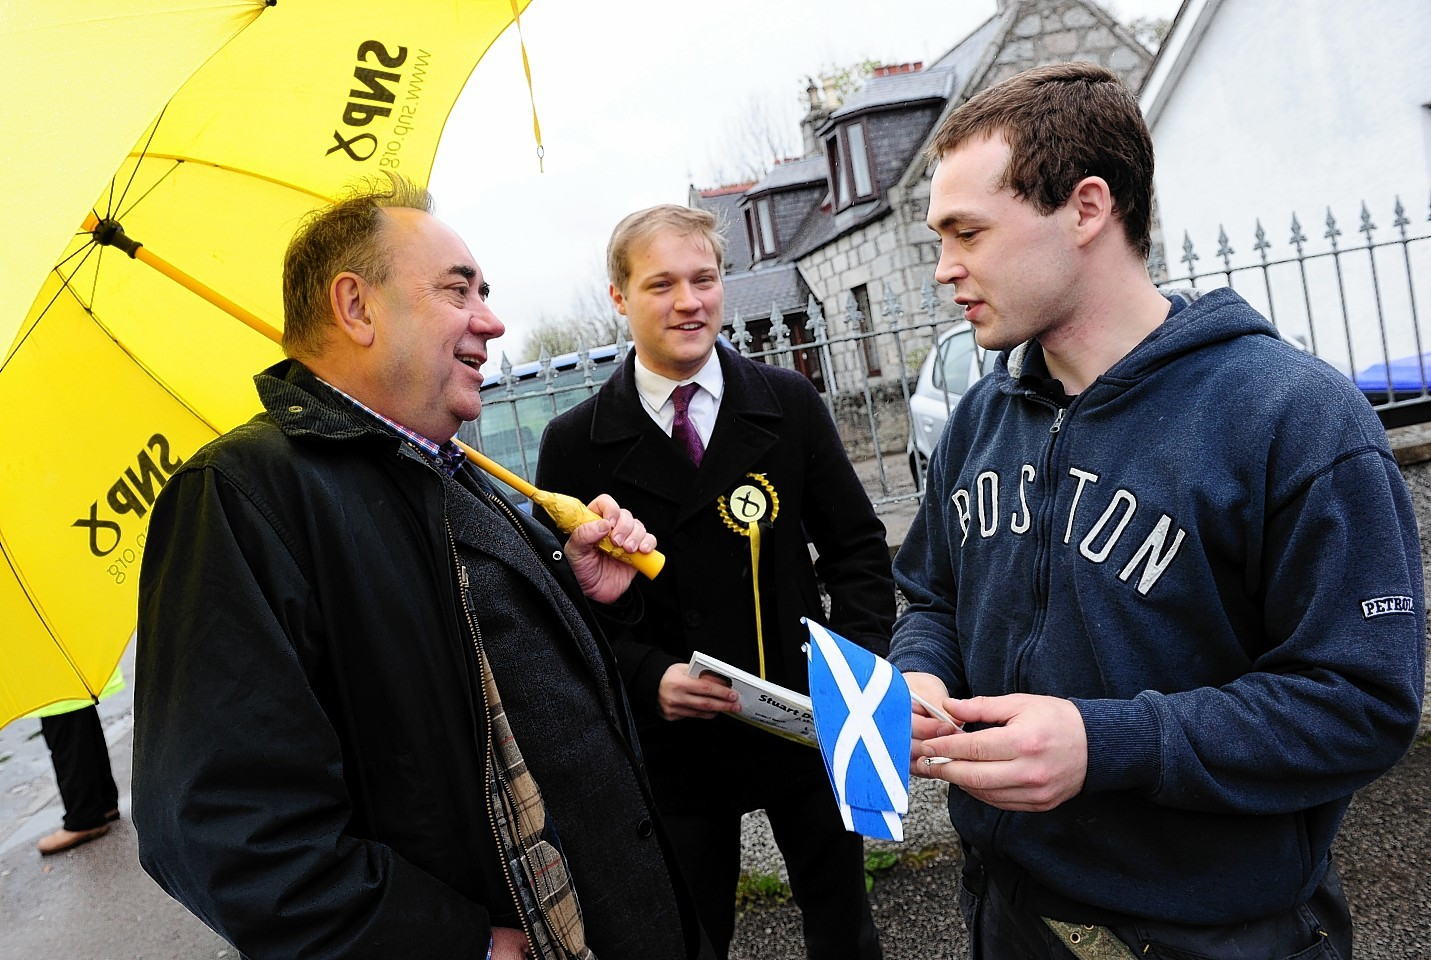 Alex Salmond and Stuart Donaldson are out together on the streets campaigning in Kemnay